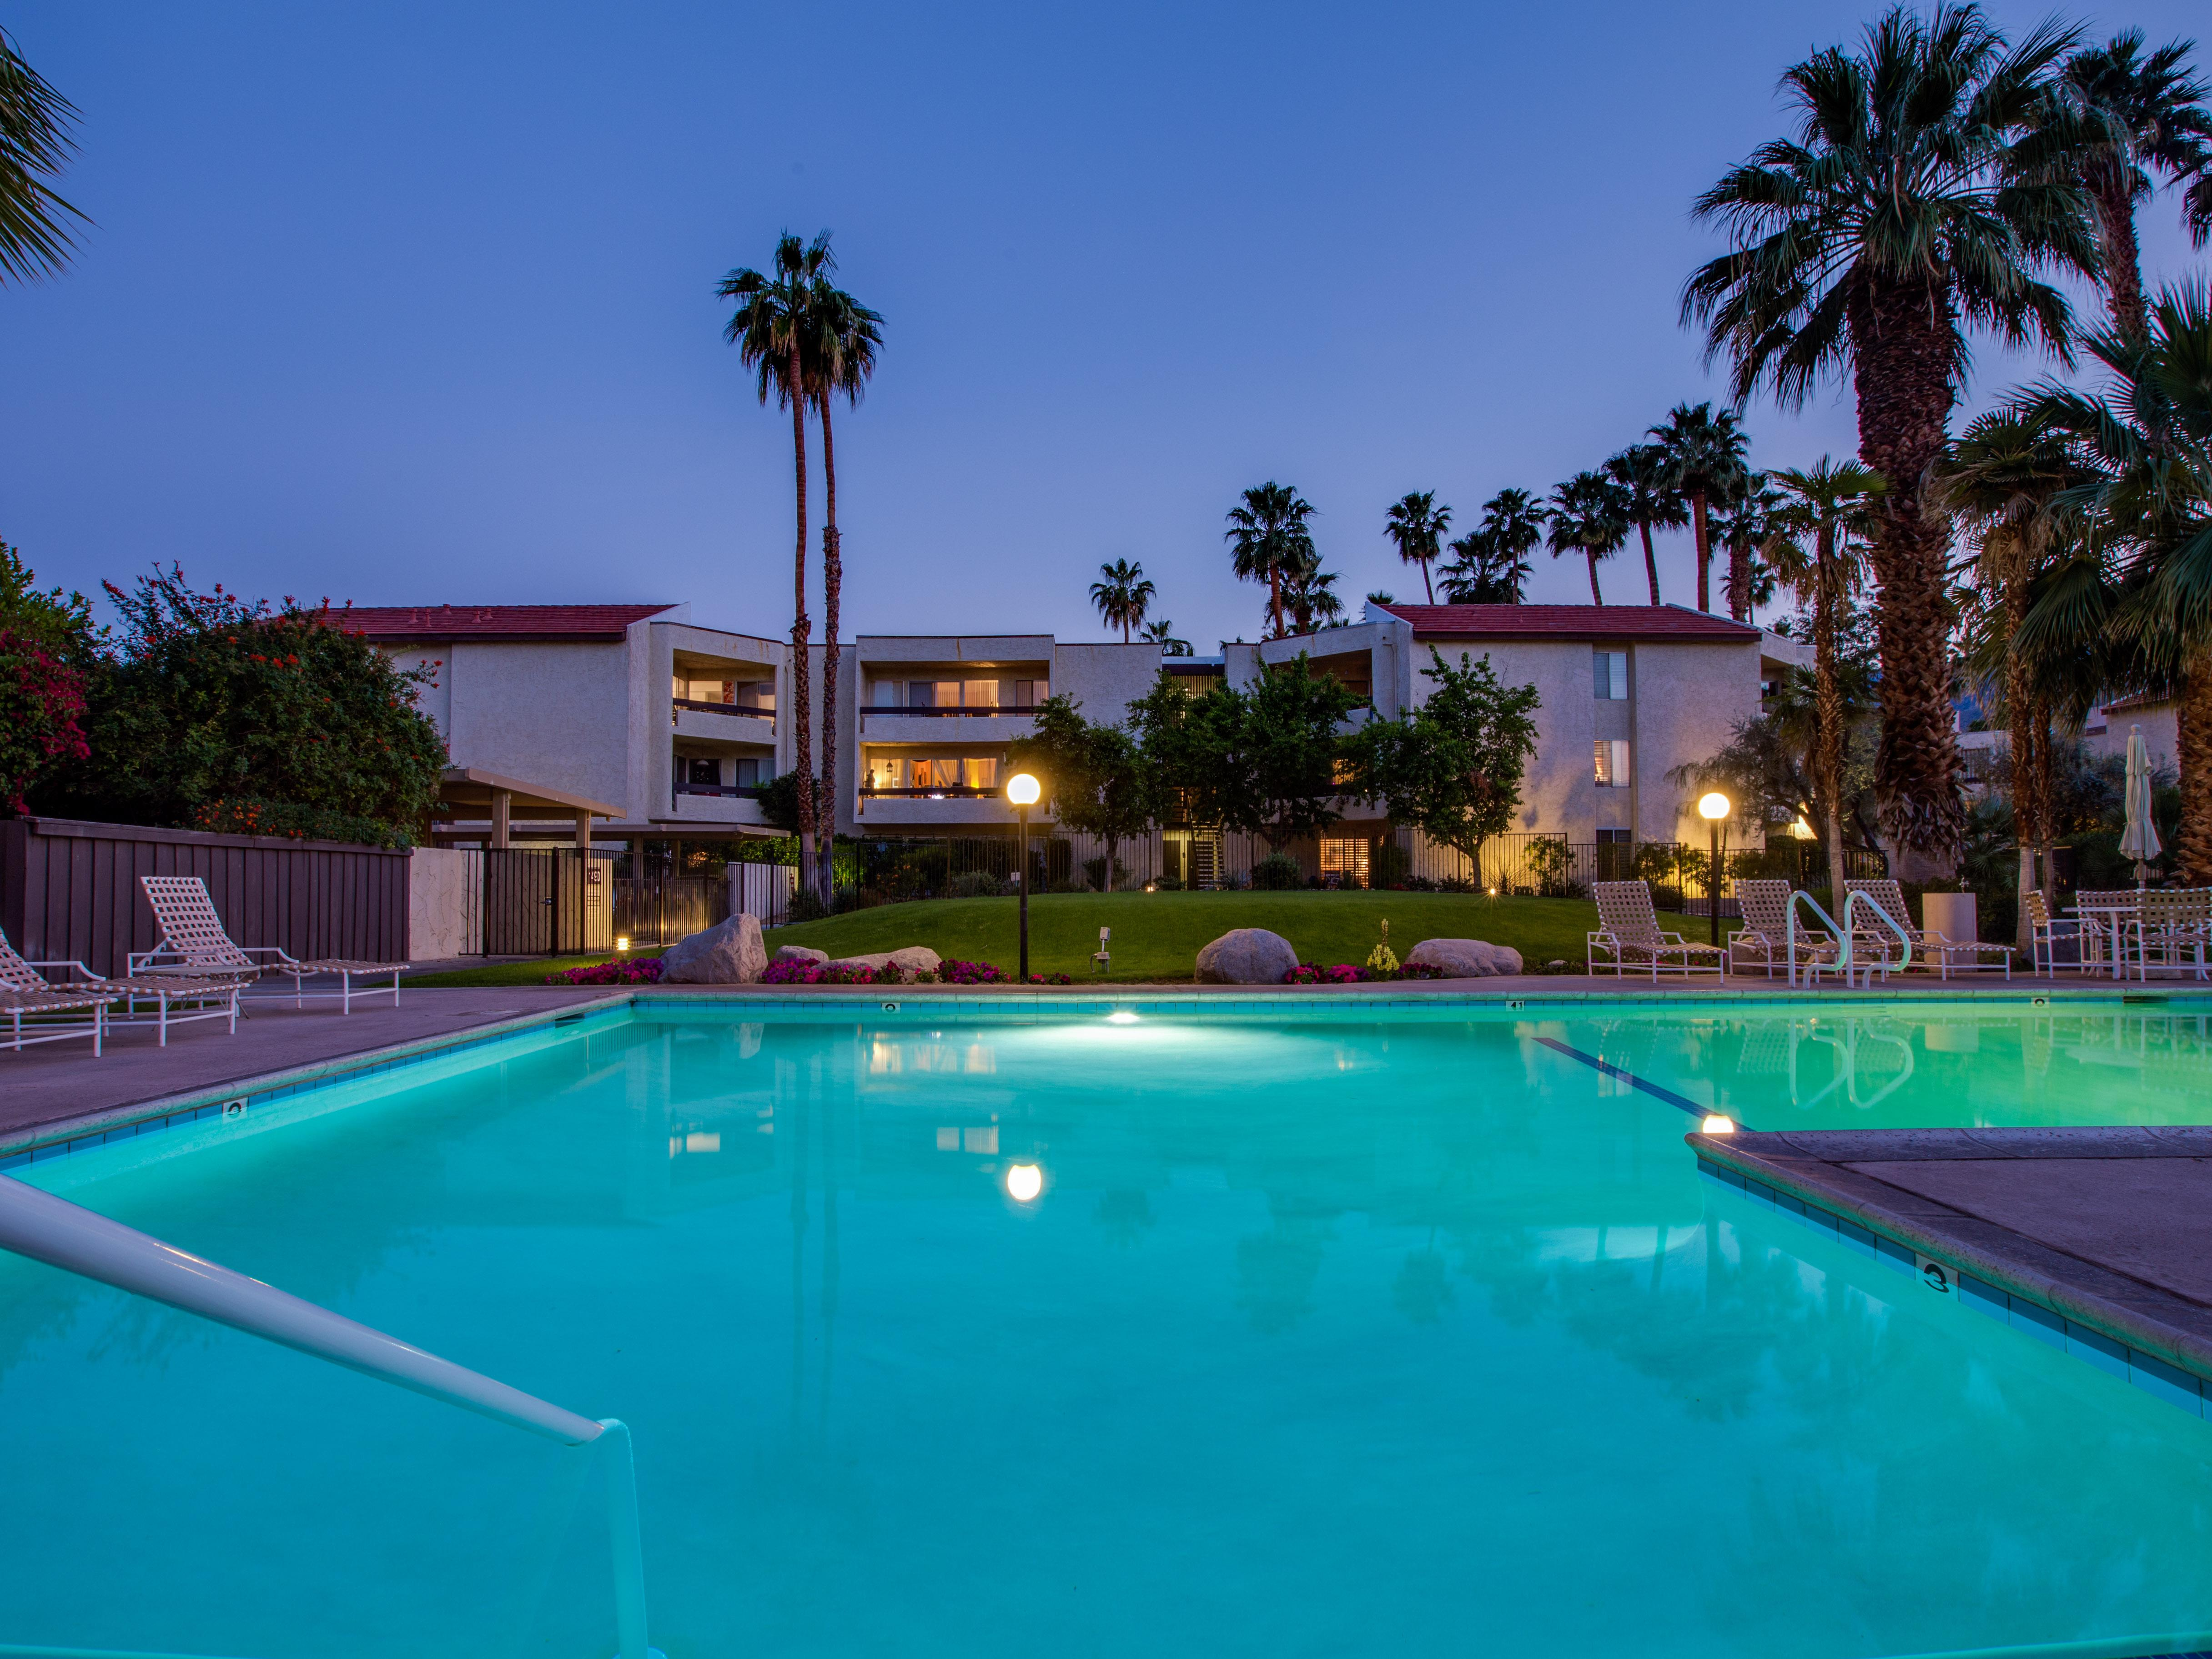 Property Image 1 - Bright Open Condo with Resort Amenities in Palm Springs